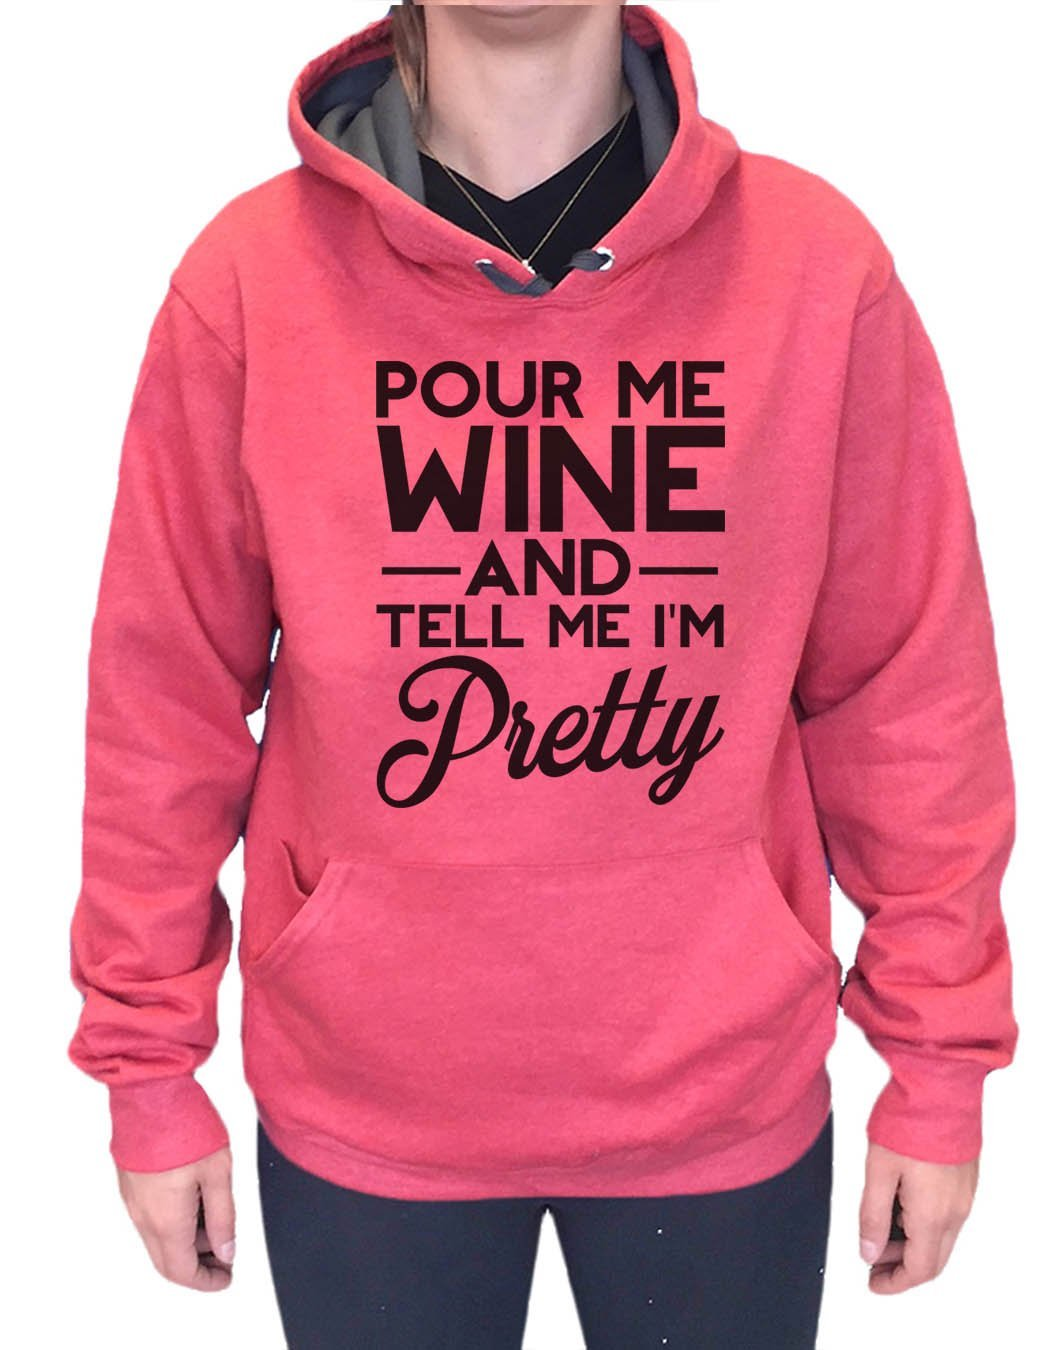 UNISEX HOODIE - Pour Me Wine And Tell Me I'm Pretty - FUNNY MENS AND WOMENS HOODED SWEATSHIRTS - 2162 Funny Shirt Small / Cranberry Red